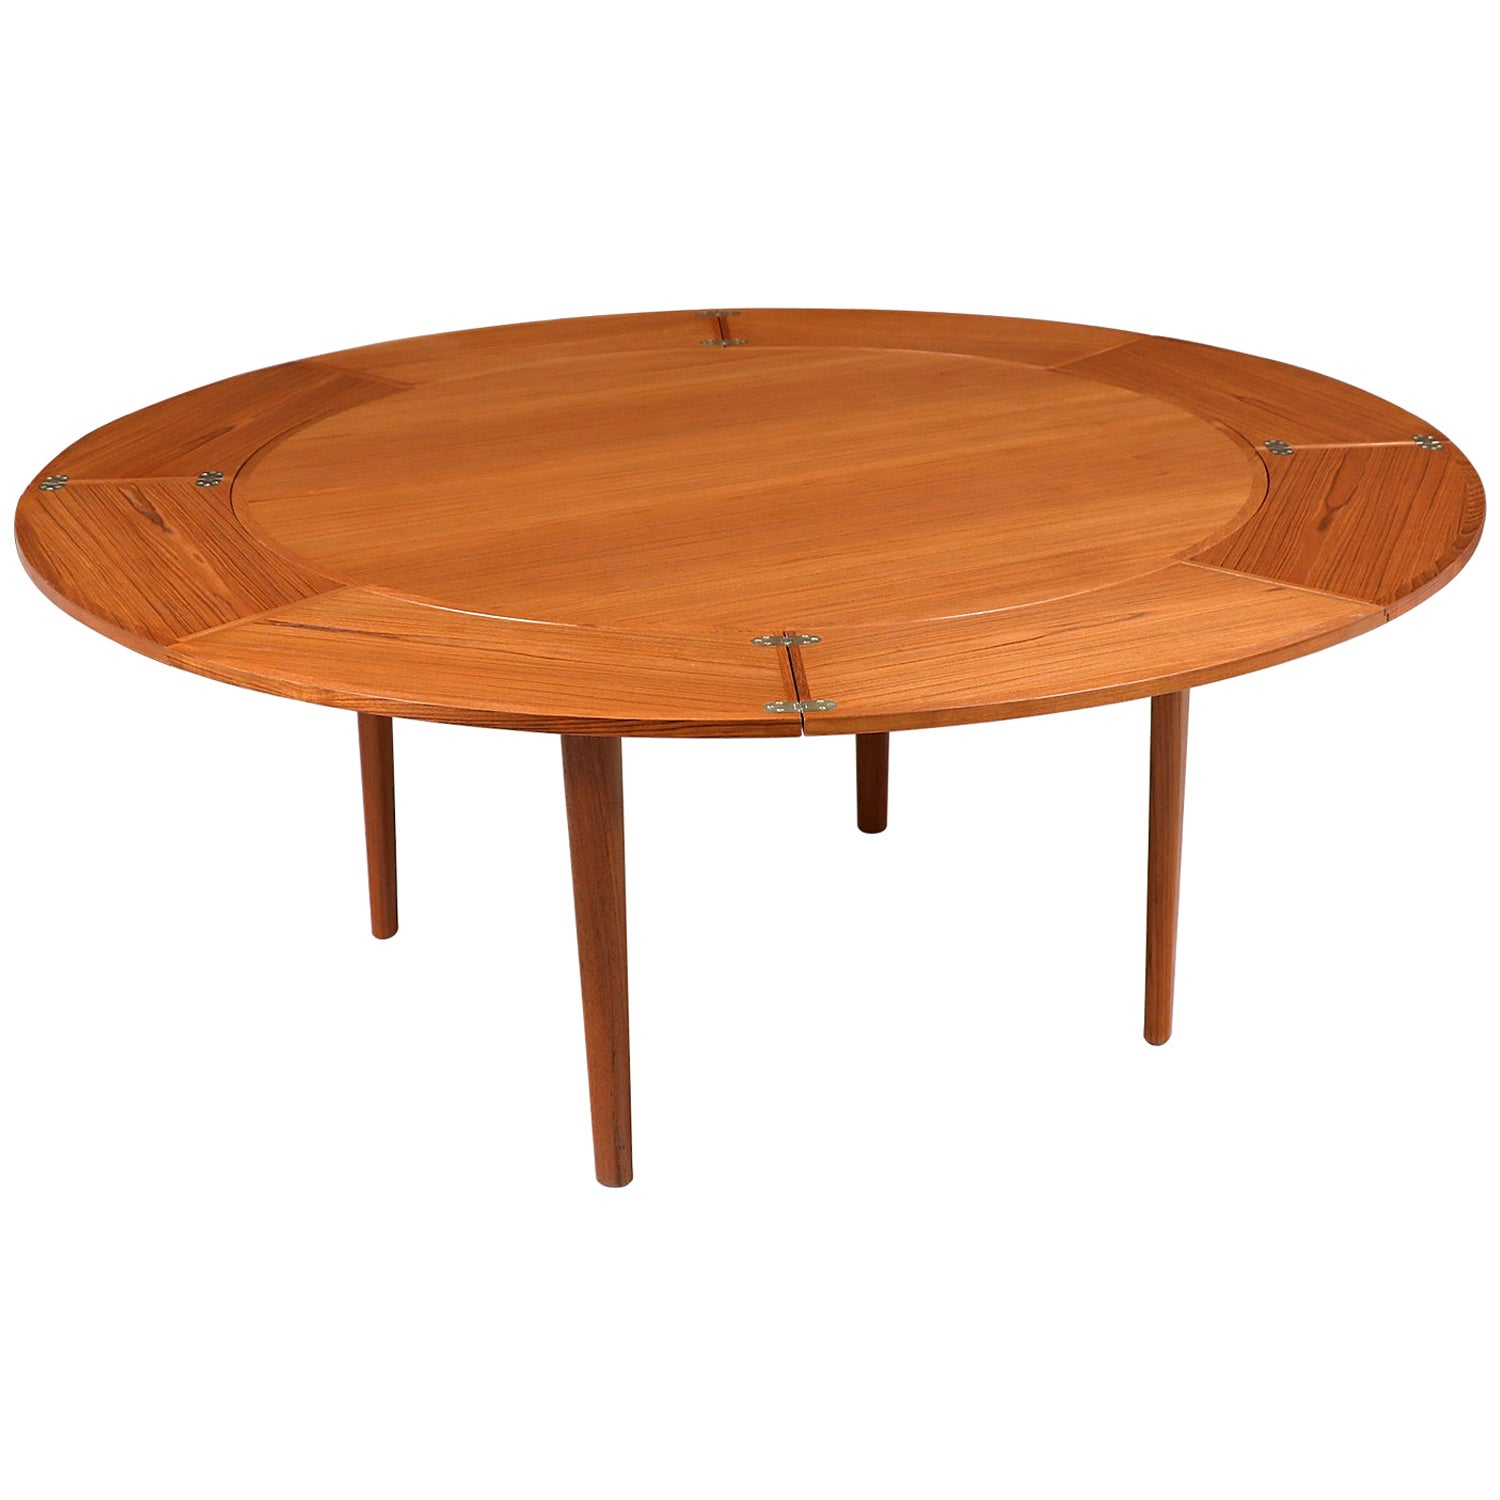 "Danish Modern ""Flip-Flap"" Expanding Teak Dining Table by Dyrlund"